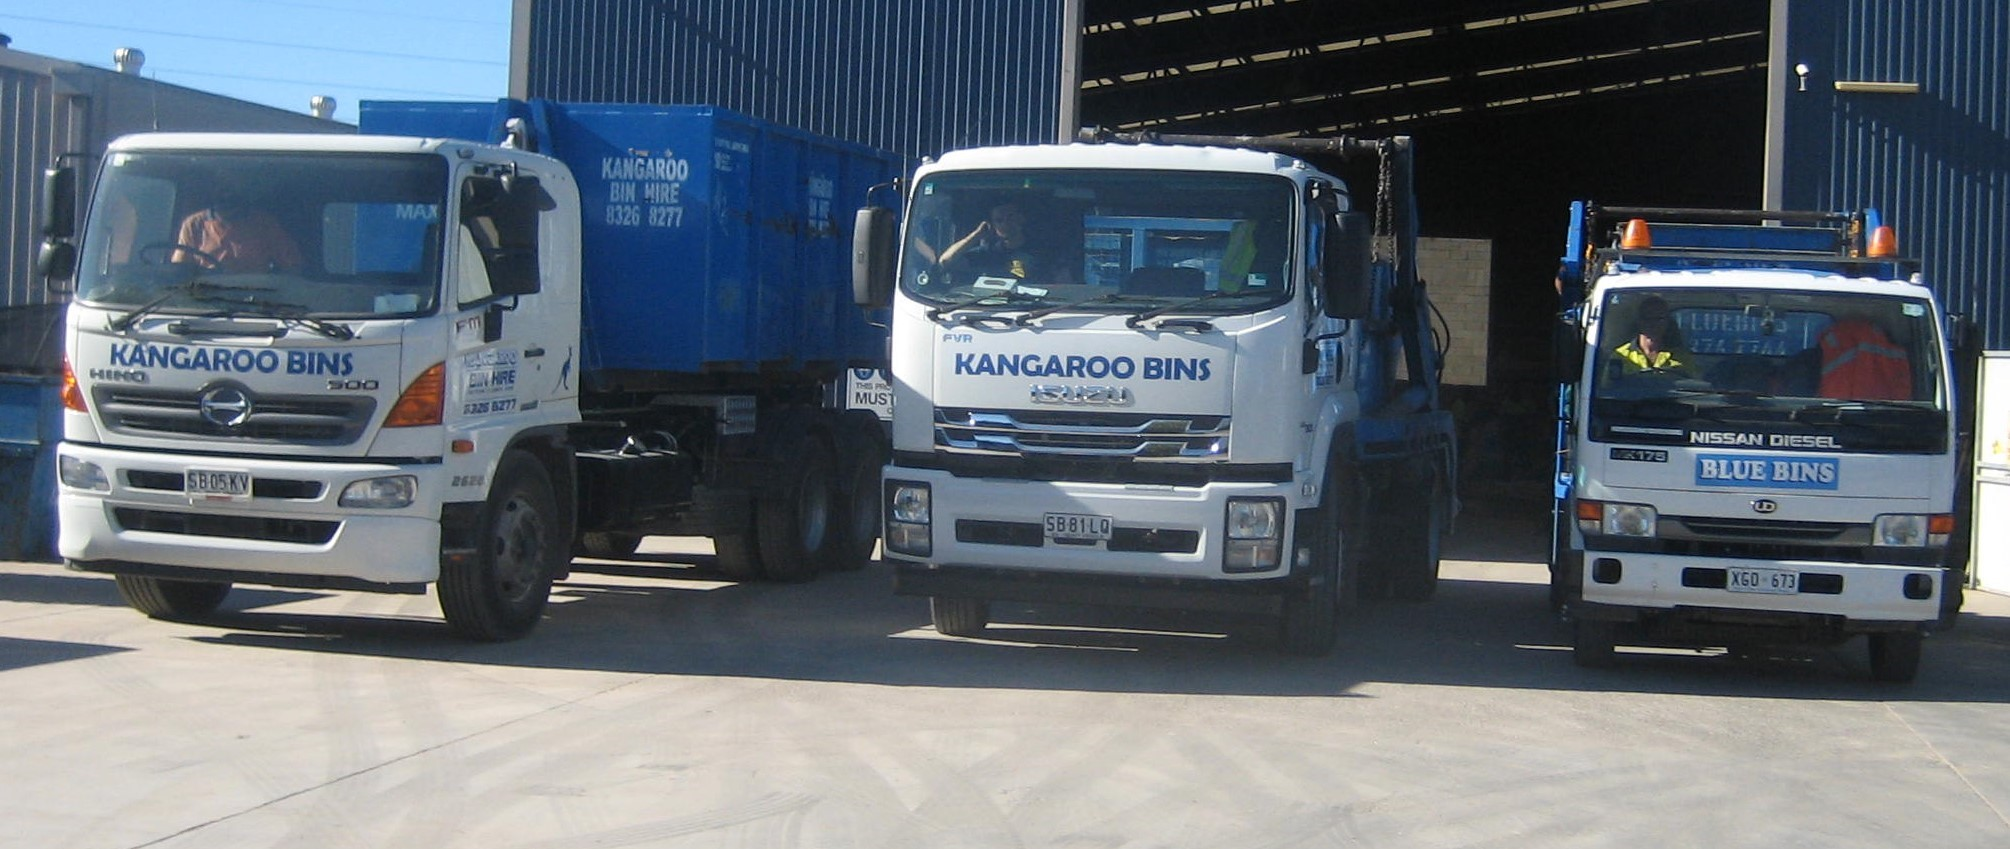 Kangaroo Bin Hire Pty Ltd